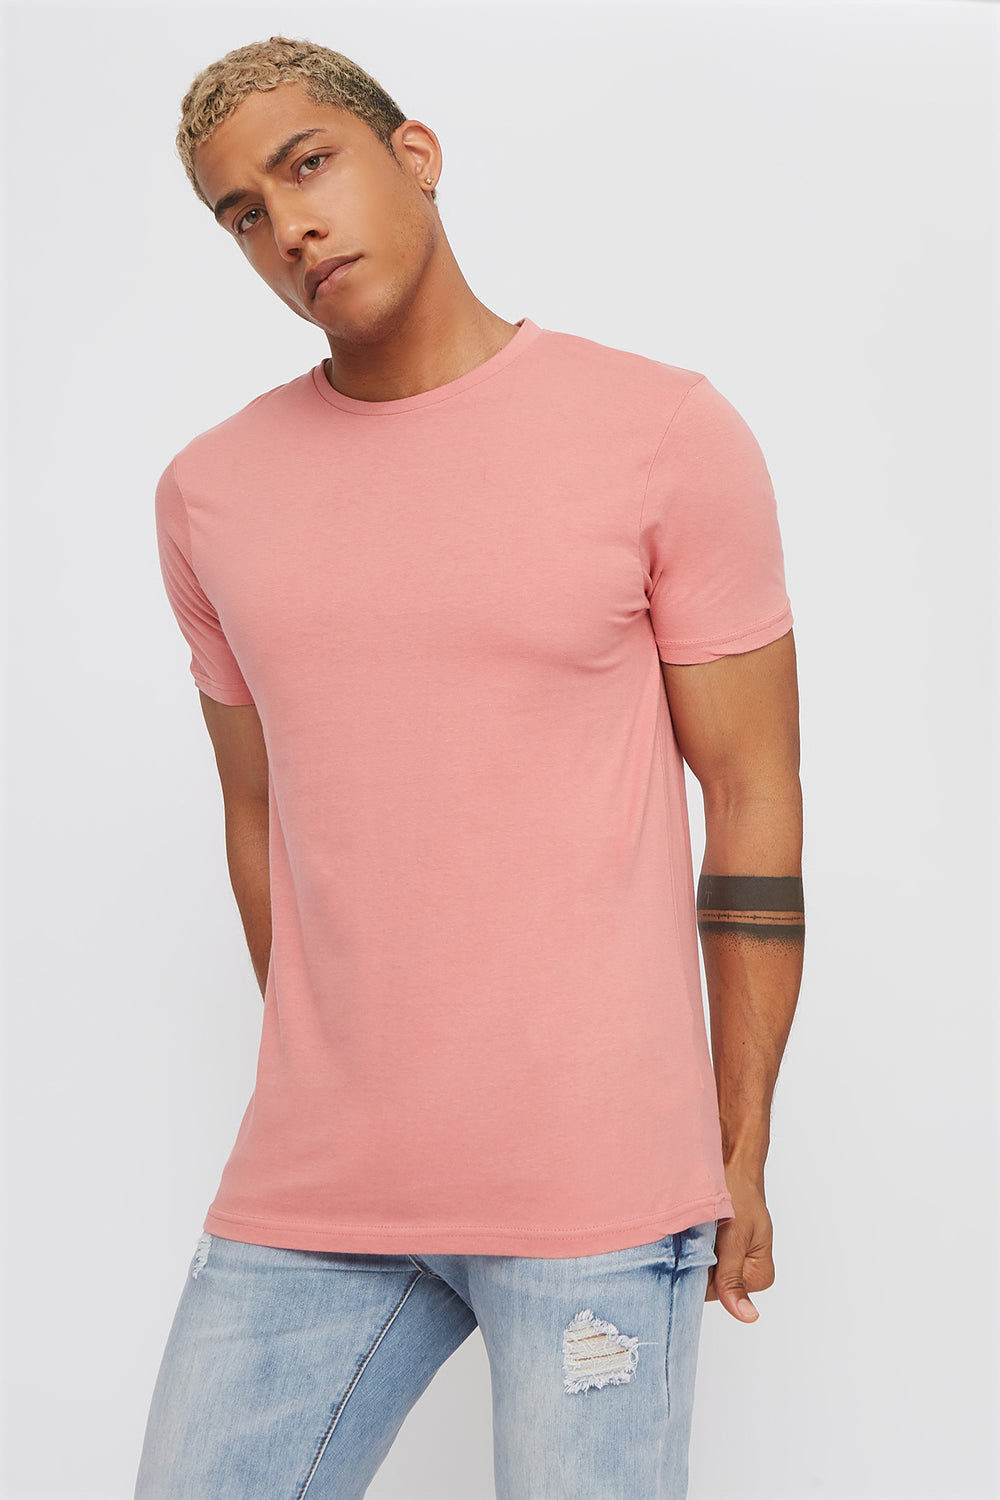 Solid Classic Crew Neck T-Shirt Rose